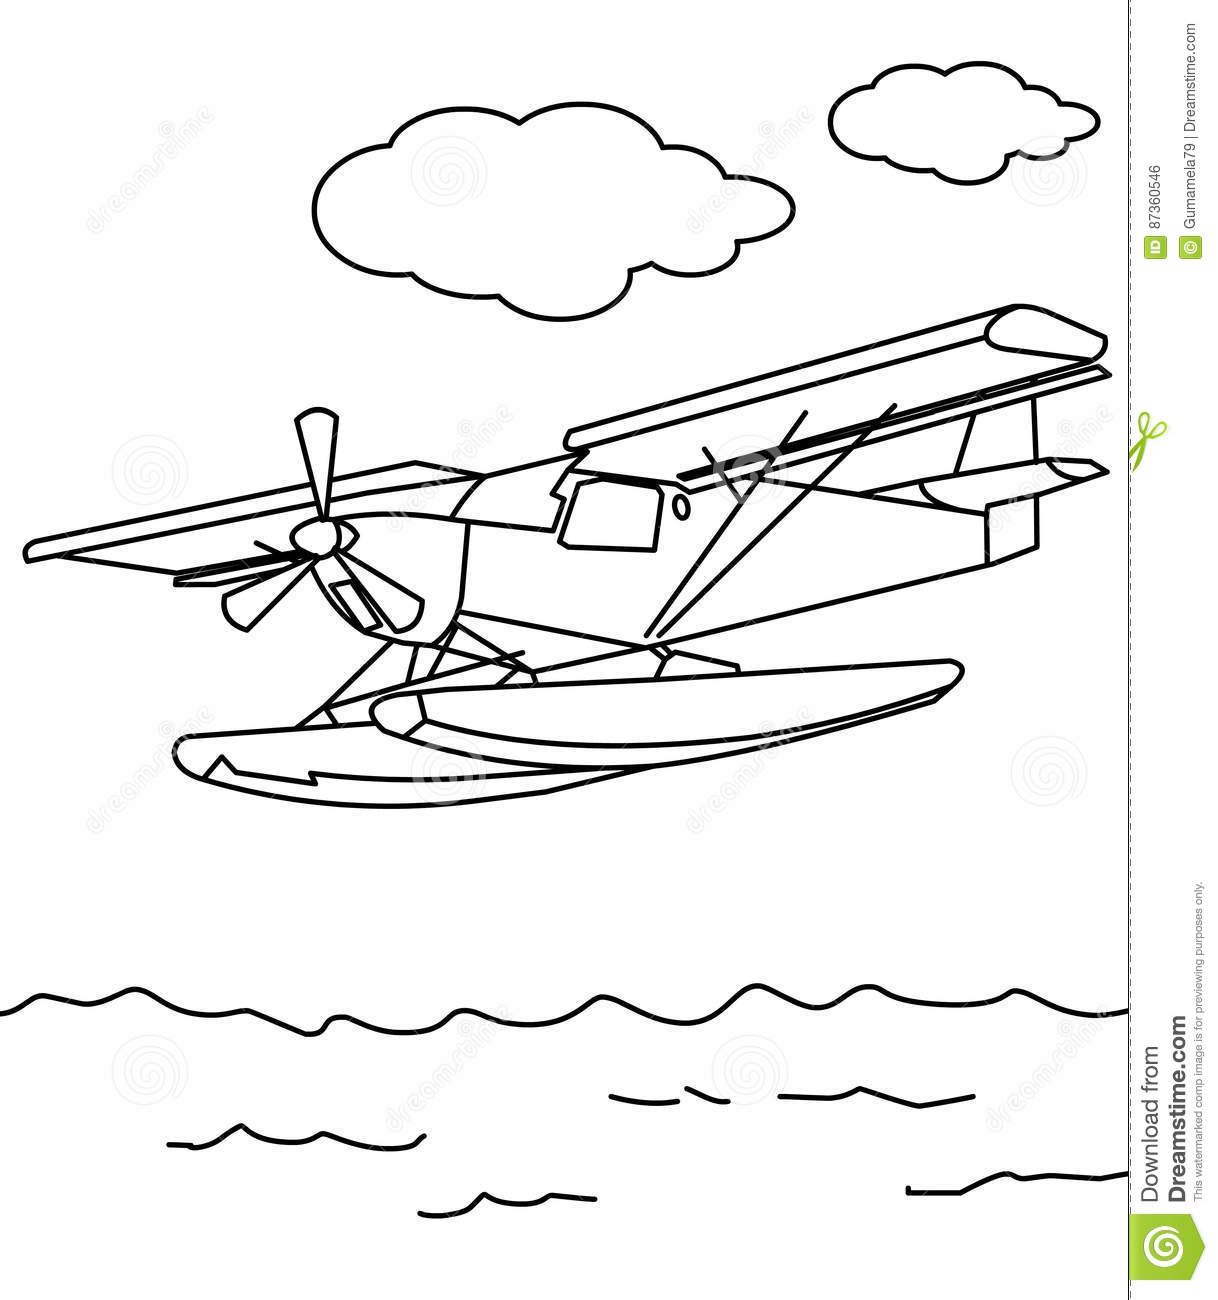 Sea plane coloring page stock illustration. Illustration ...